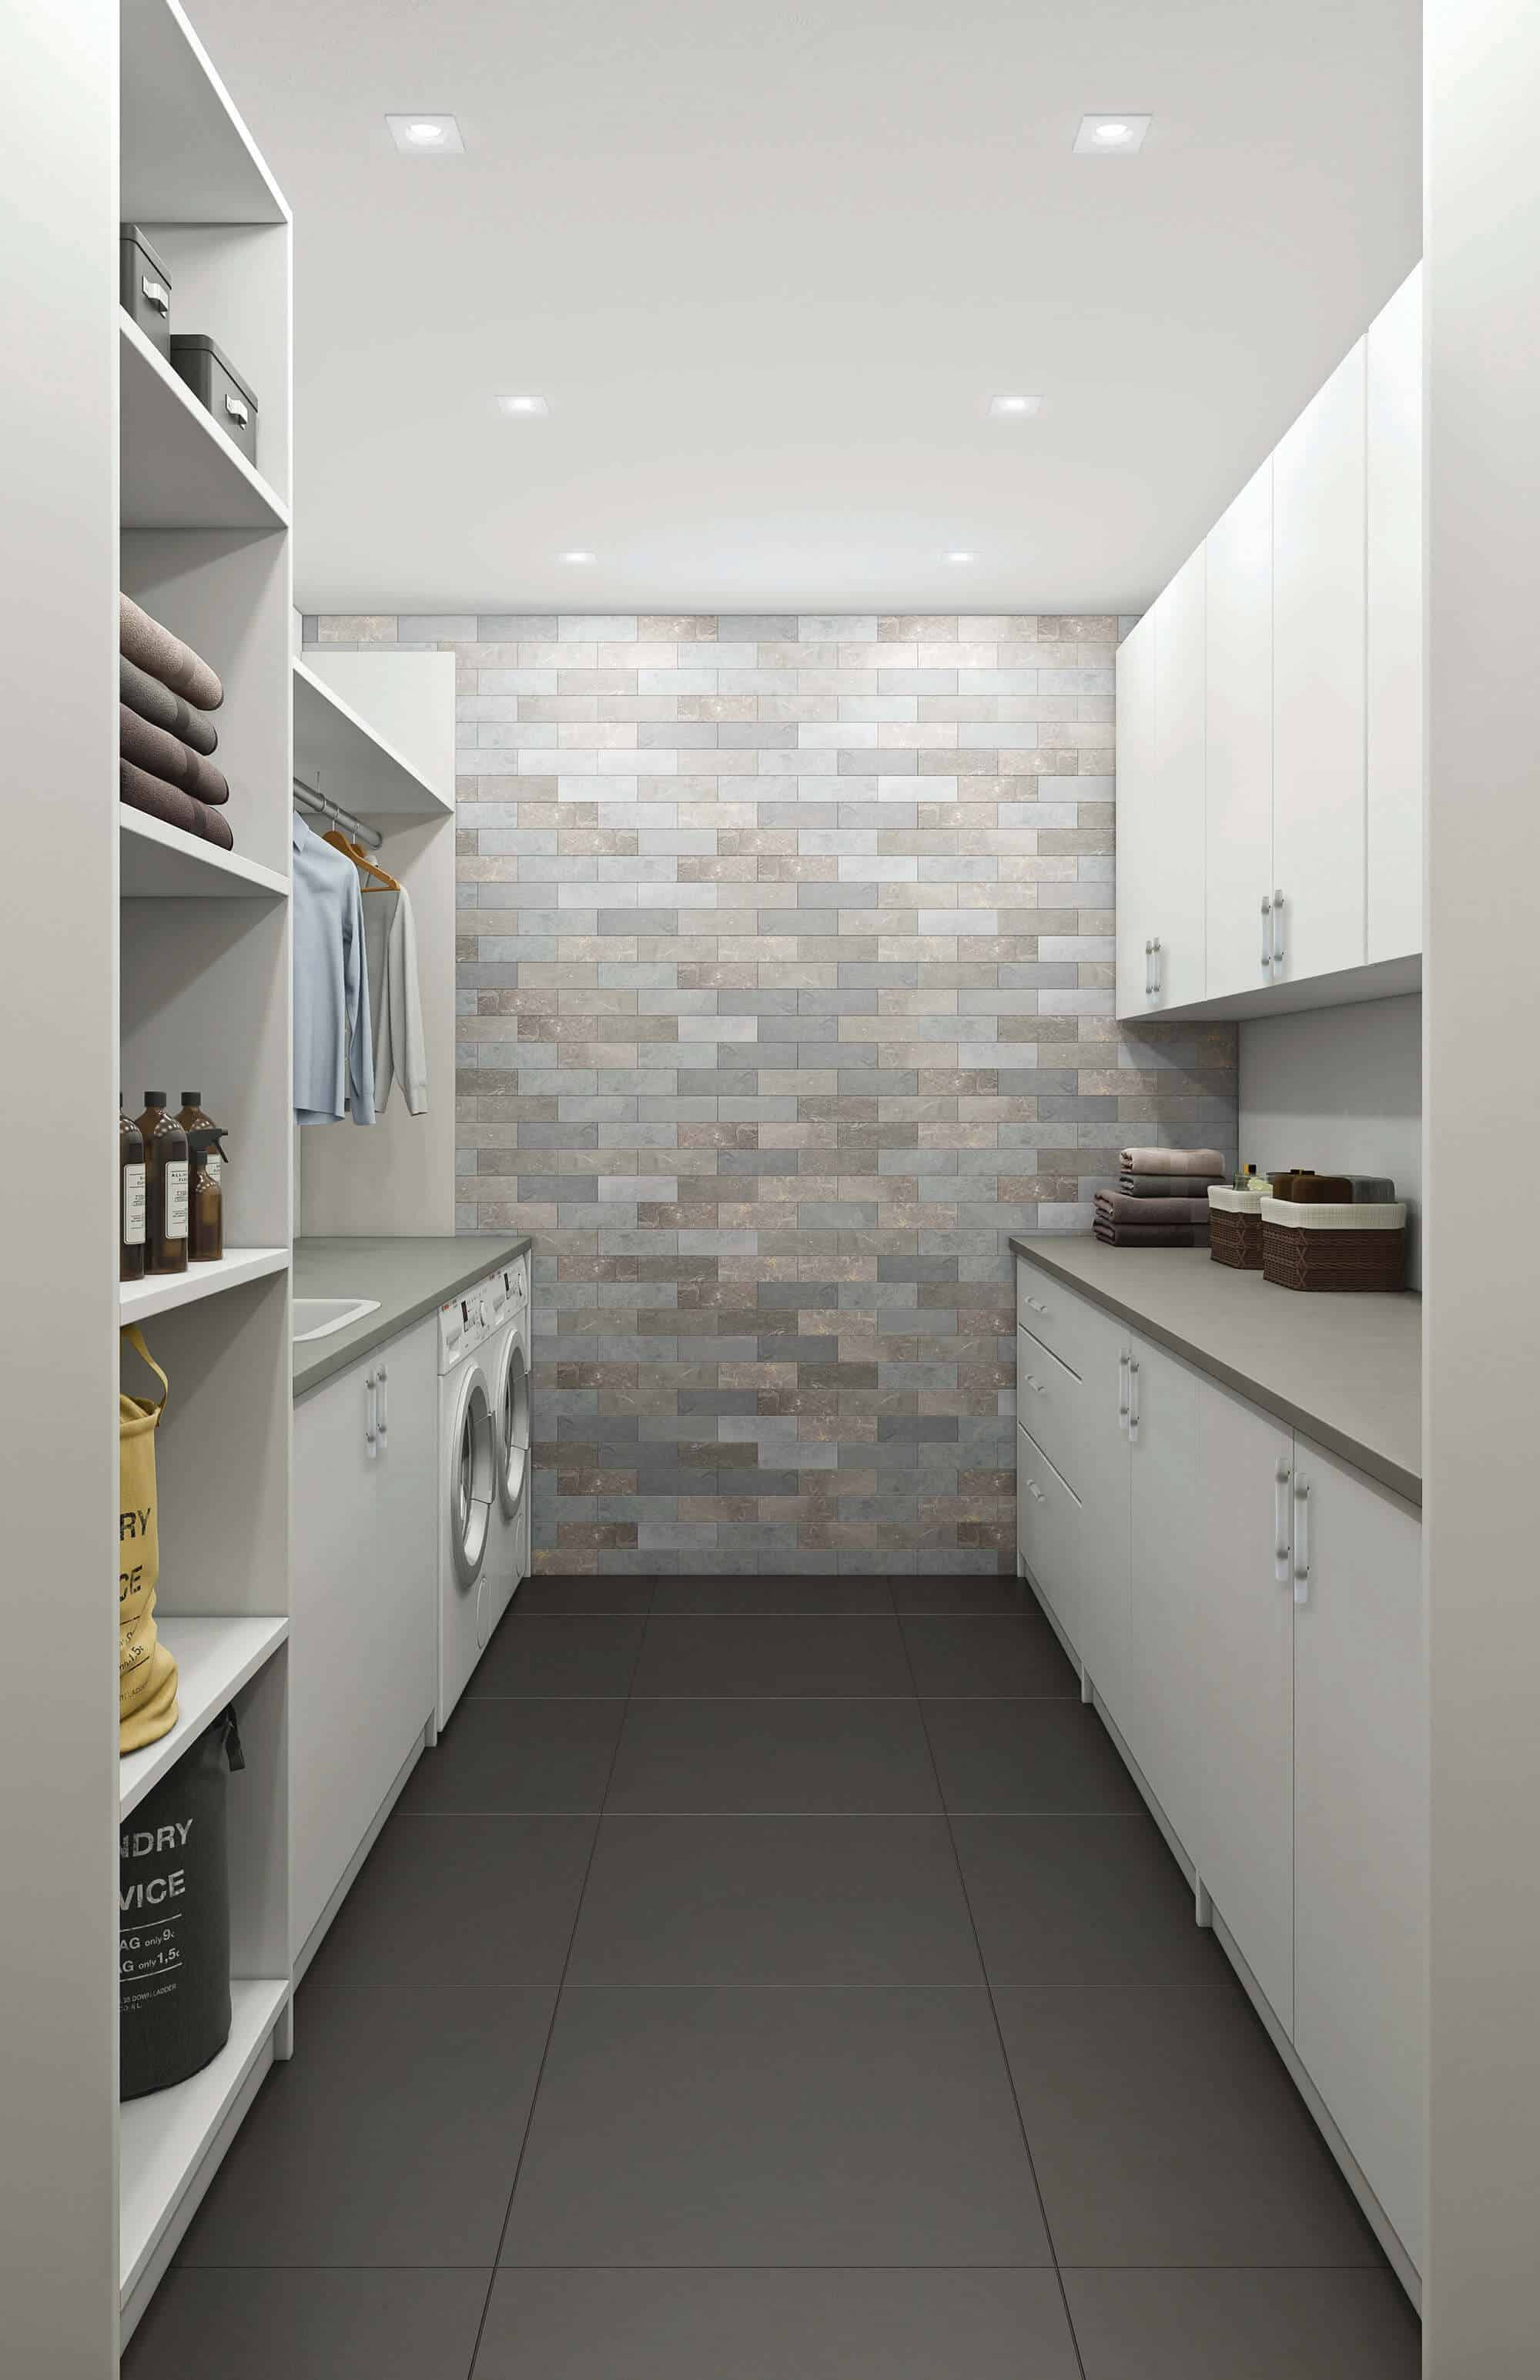 Design Your Own Laundry Room: Laundry_2_W_CBD